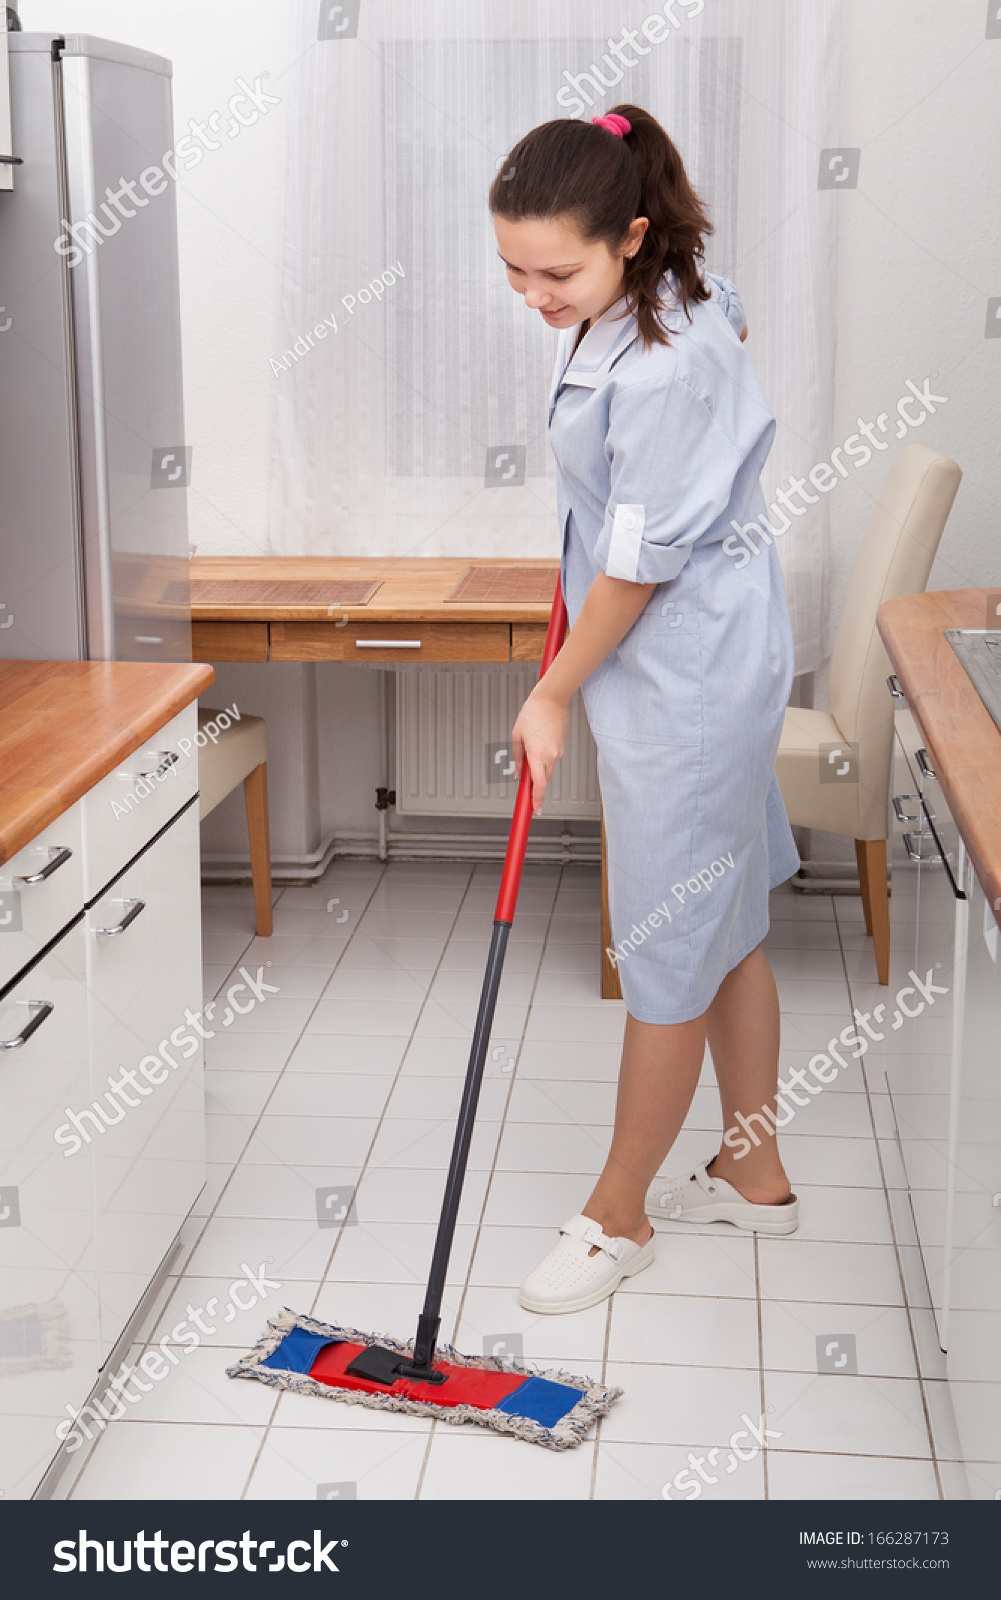 Kitchen Floor Cleaners Portrait Young Maid Uniform Cleaning Kitchen Stock Photo 166287173